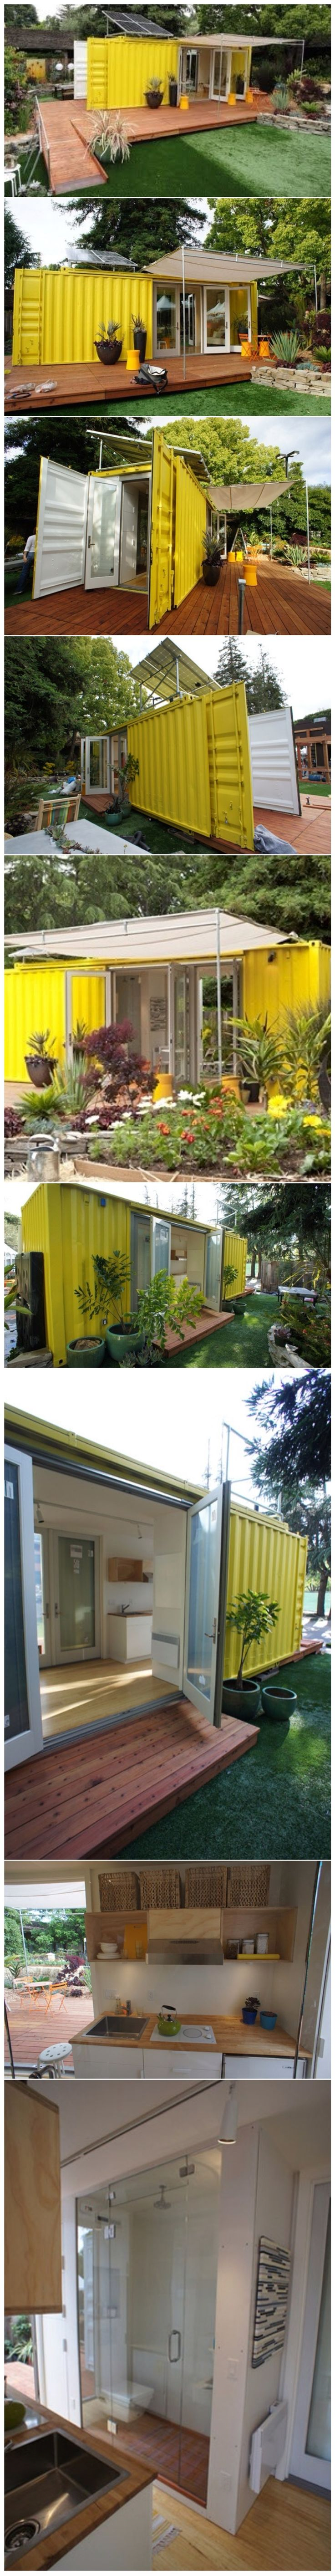 "via www.cargotecture.com This little shipping container house called ""The Nomad"" was designed for Sunset Magazine by Seattle-Based HyBrid Architecture. The home's shell is a used 24 foot shipping container that provides 192 sq. ft. of interior living space and can sleep four people. The house has a galley kitchen, a bathroom and several exterior openings."